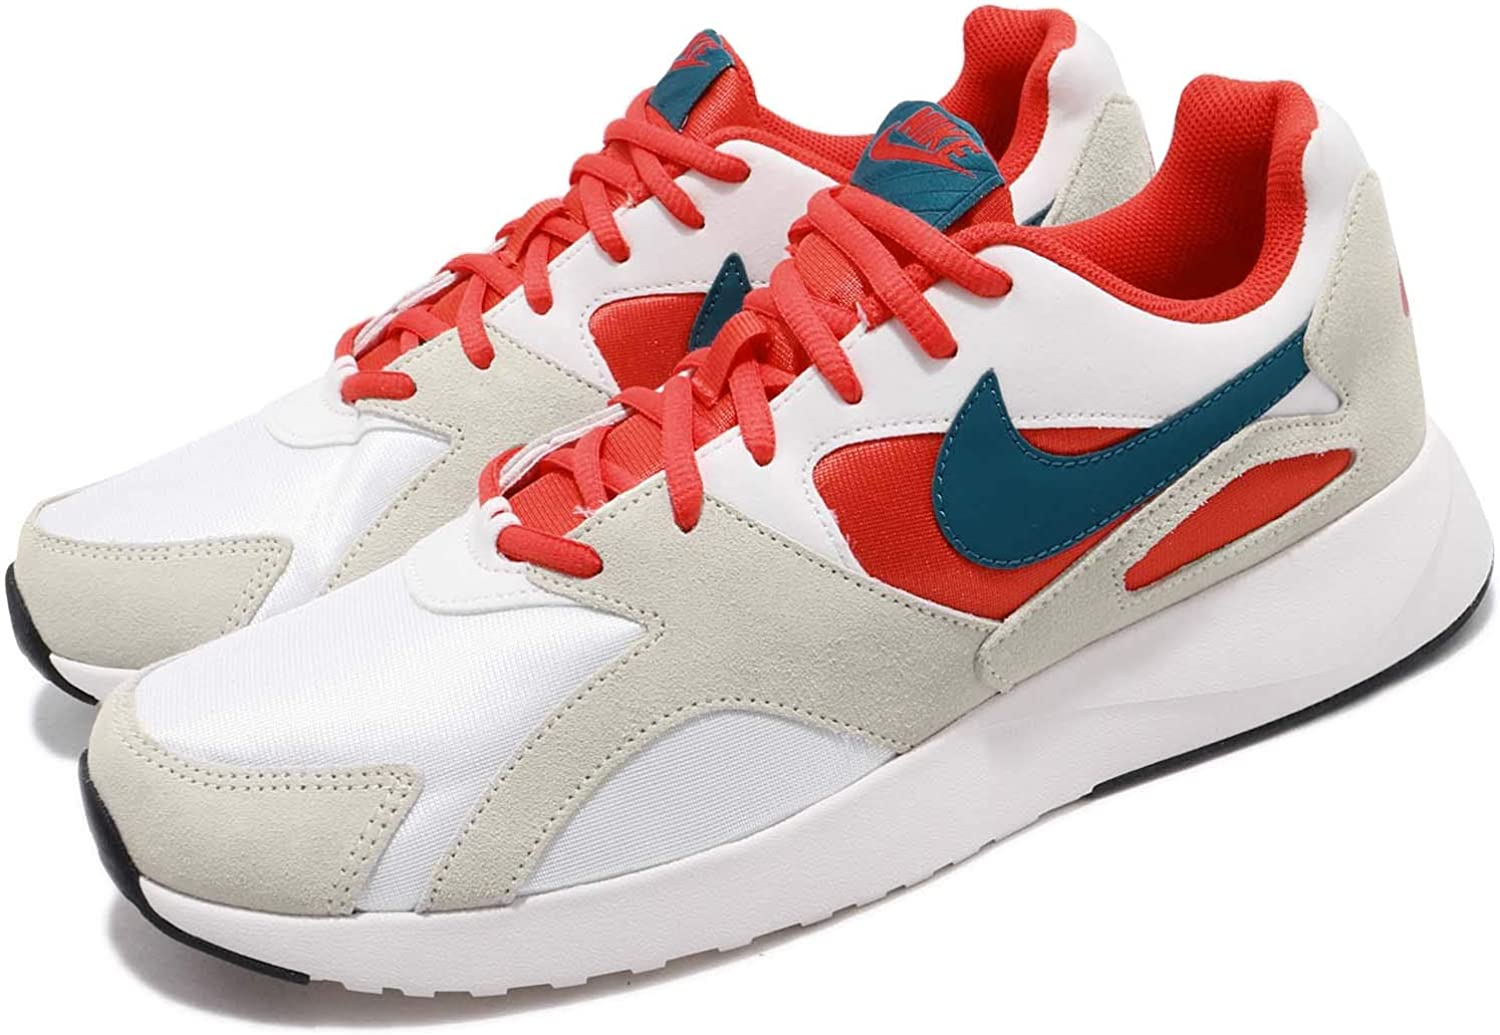 Nike Pantheos, Chaussures de Fitness Homme: